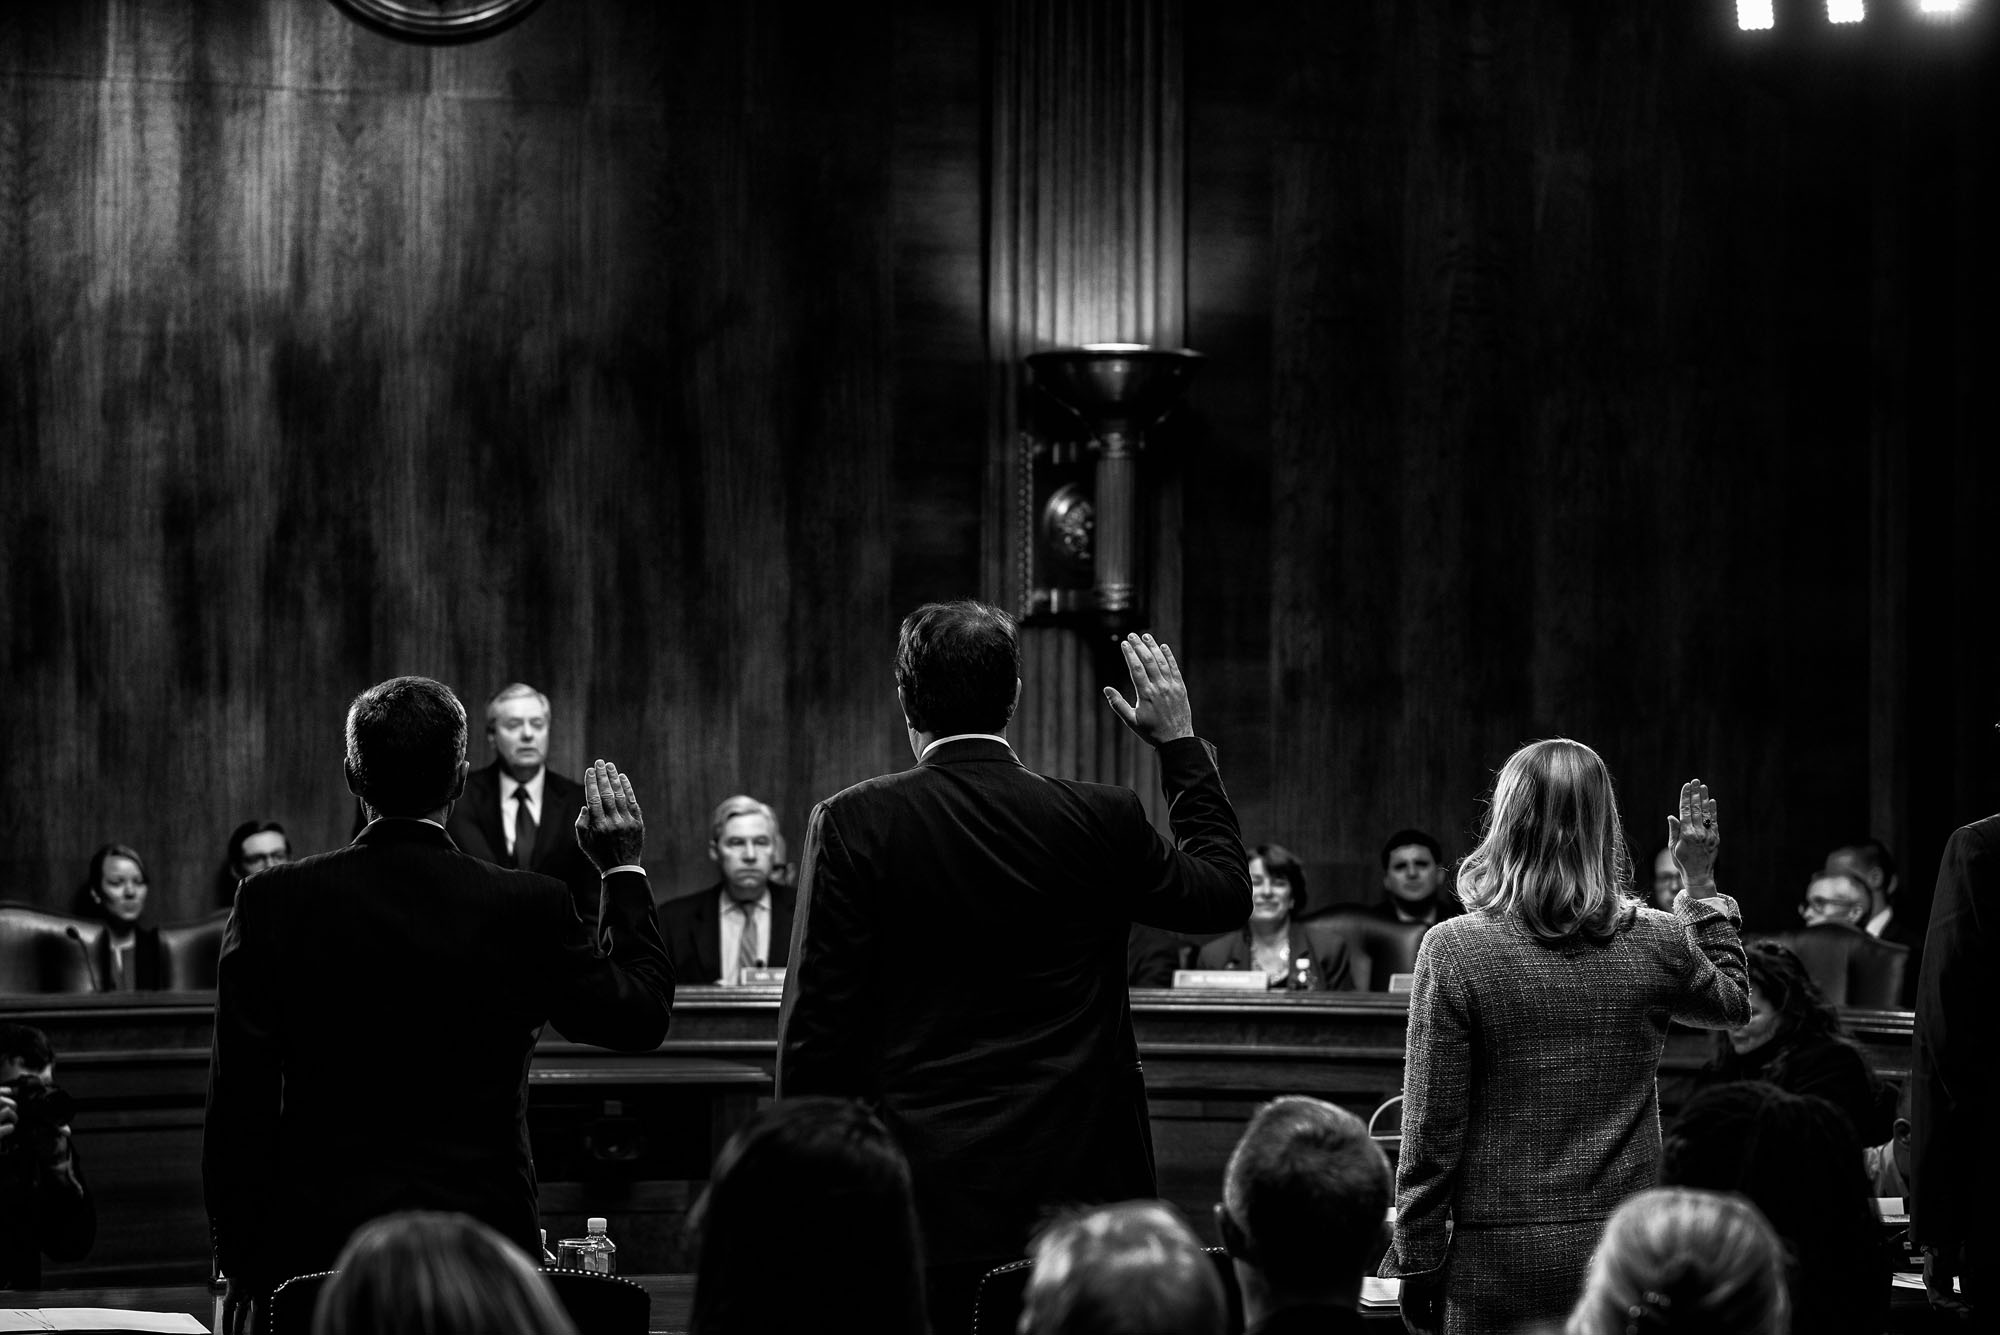 Witnesses are sworn in before Senate Judiciary Subcommittee on Crime and Terrorism to testify on Russia's attempts to influence democratic countries around the world, on March 15, 2017.